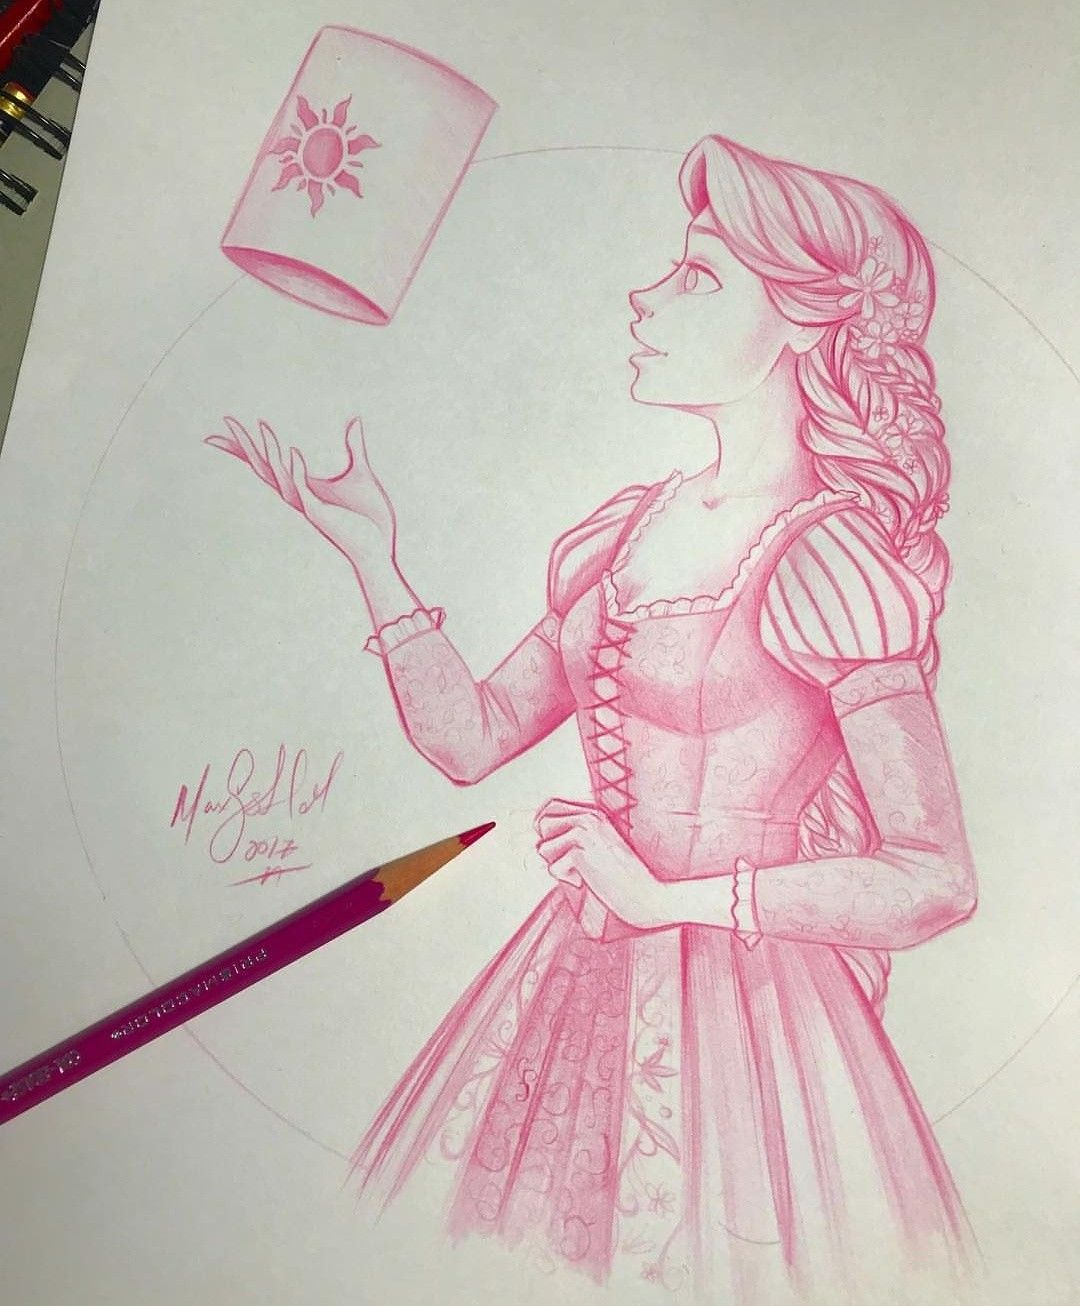 Pin by Robyn Nagel on Disney | Pinterest | Tangled, Drawings and ...